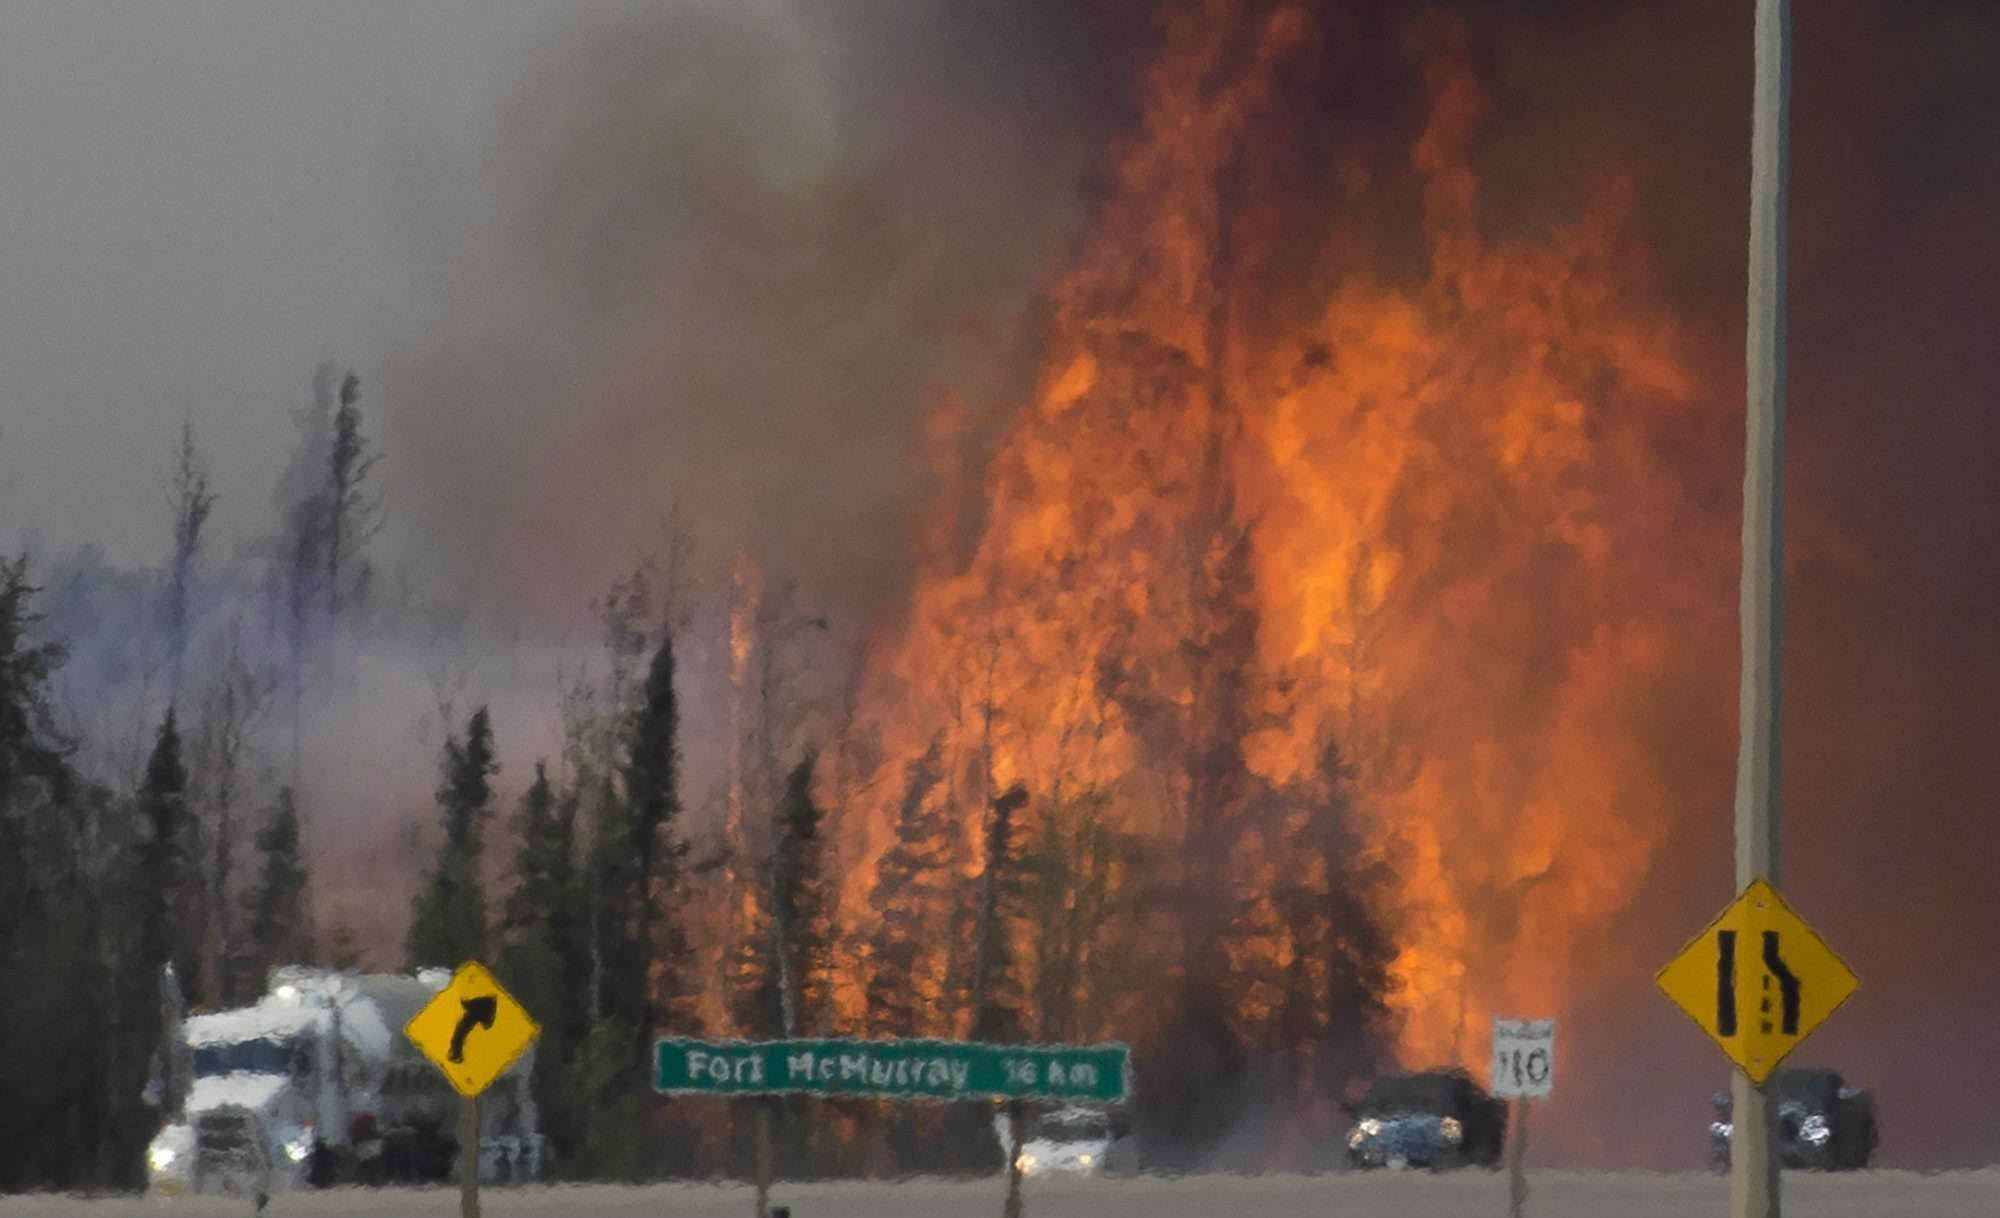 fort mcmurray single girls Find places to visit in alberta discover the canadian rockies on our western border, the southern high ranch country, boreal forests to the north, and more.